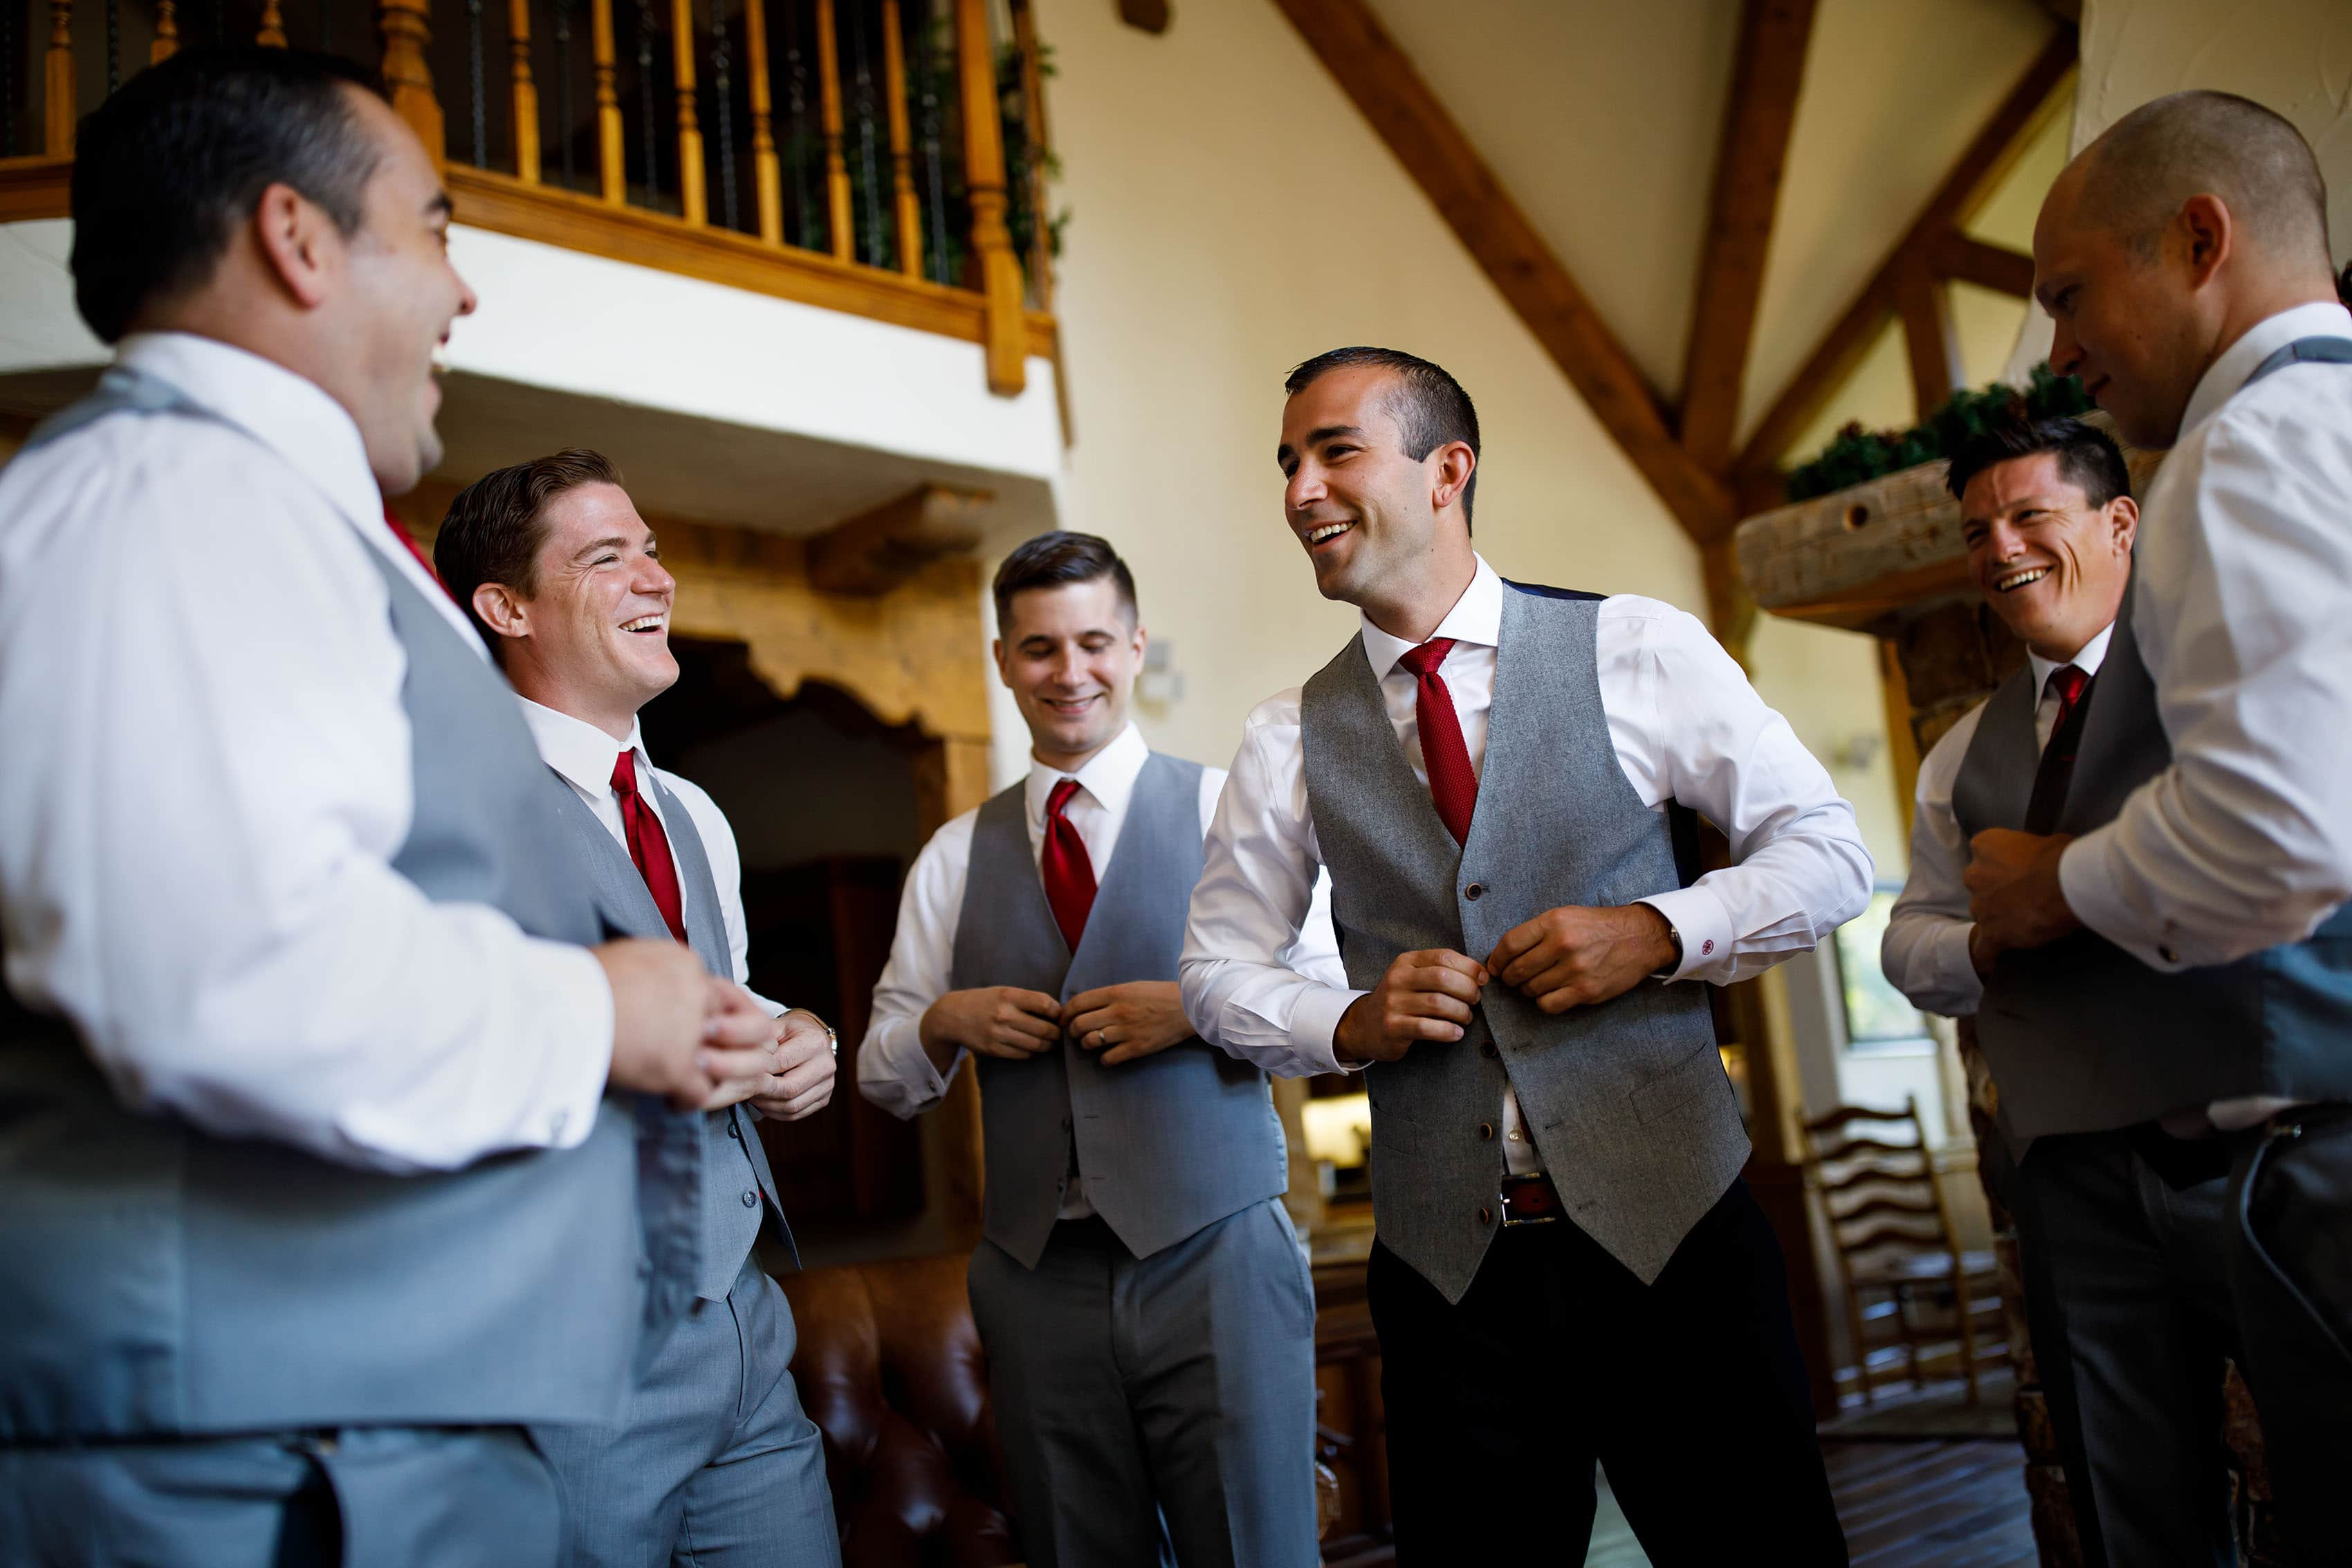 Kevin gets ready with groomsmen in Beaver Creek